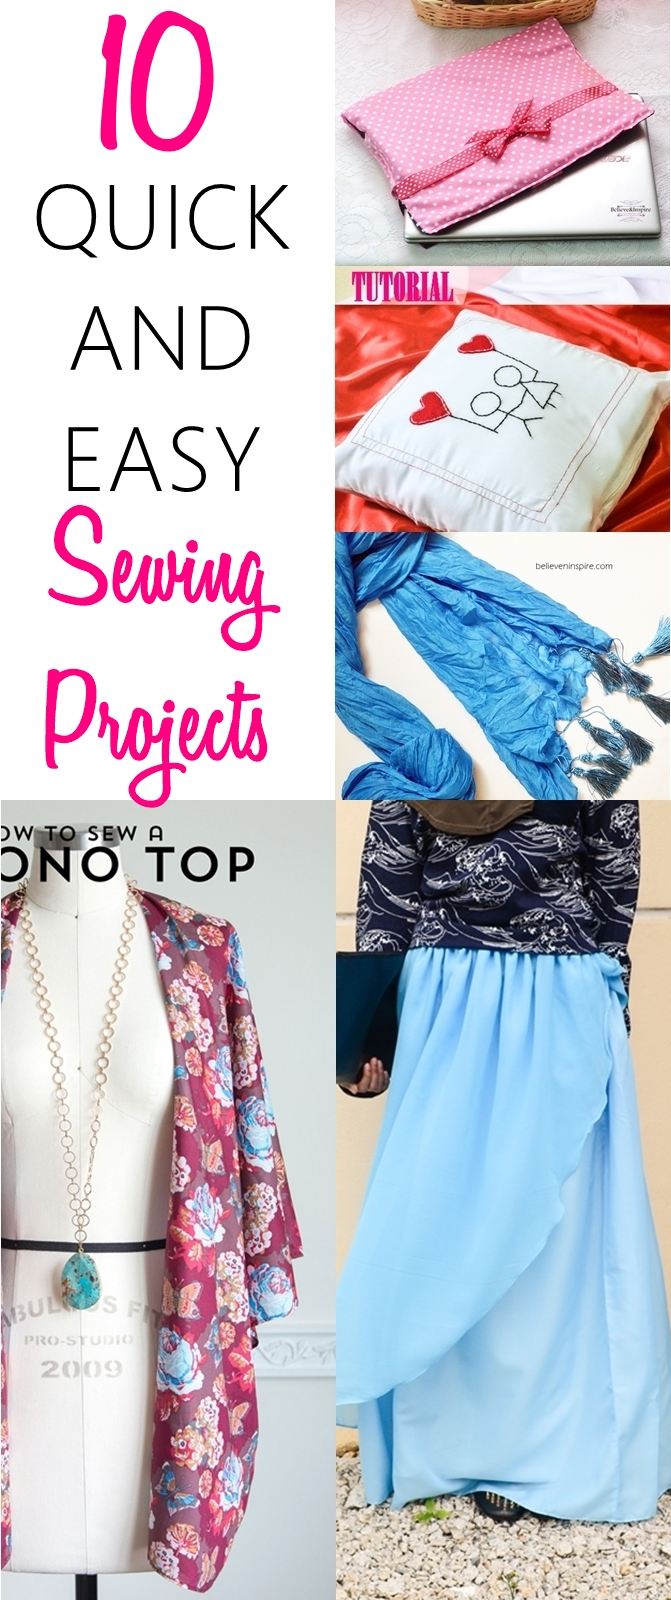 beginner sewing projects | easy to sew | sewing for beginners | quick and easy sewing projects